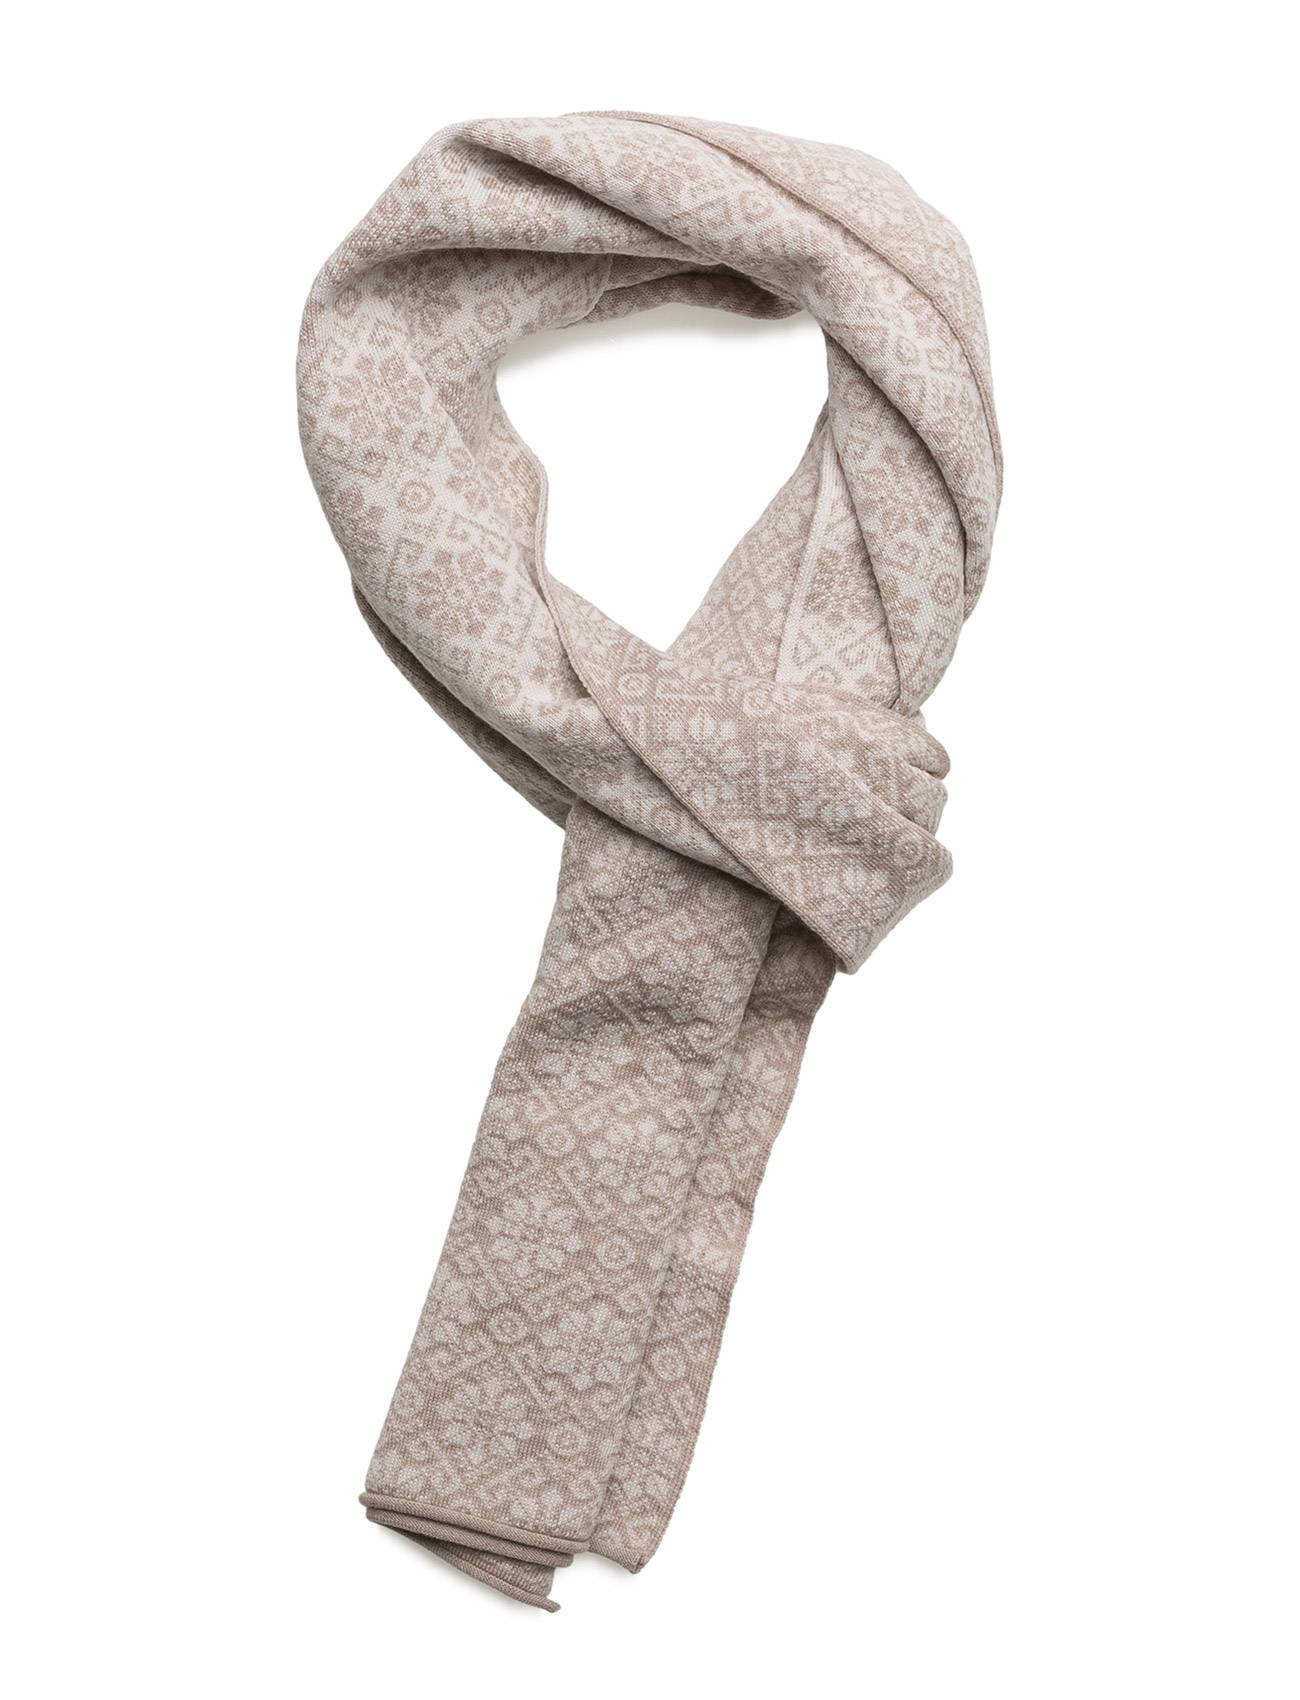 Dale of Norway Sonja Scarf